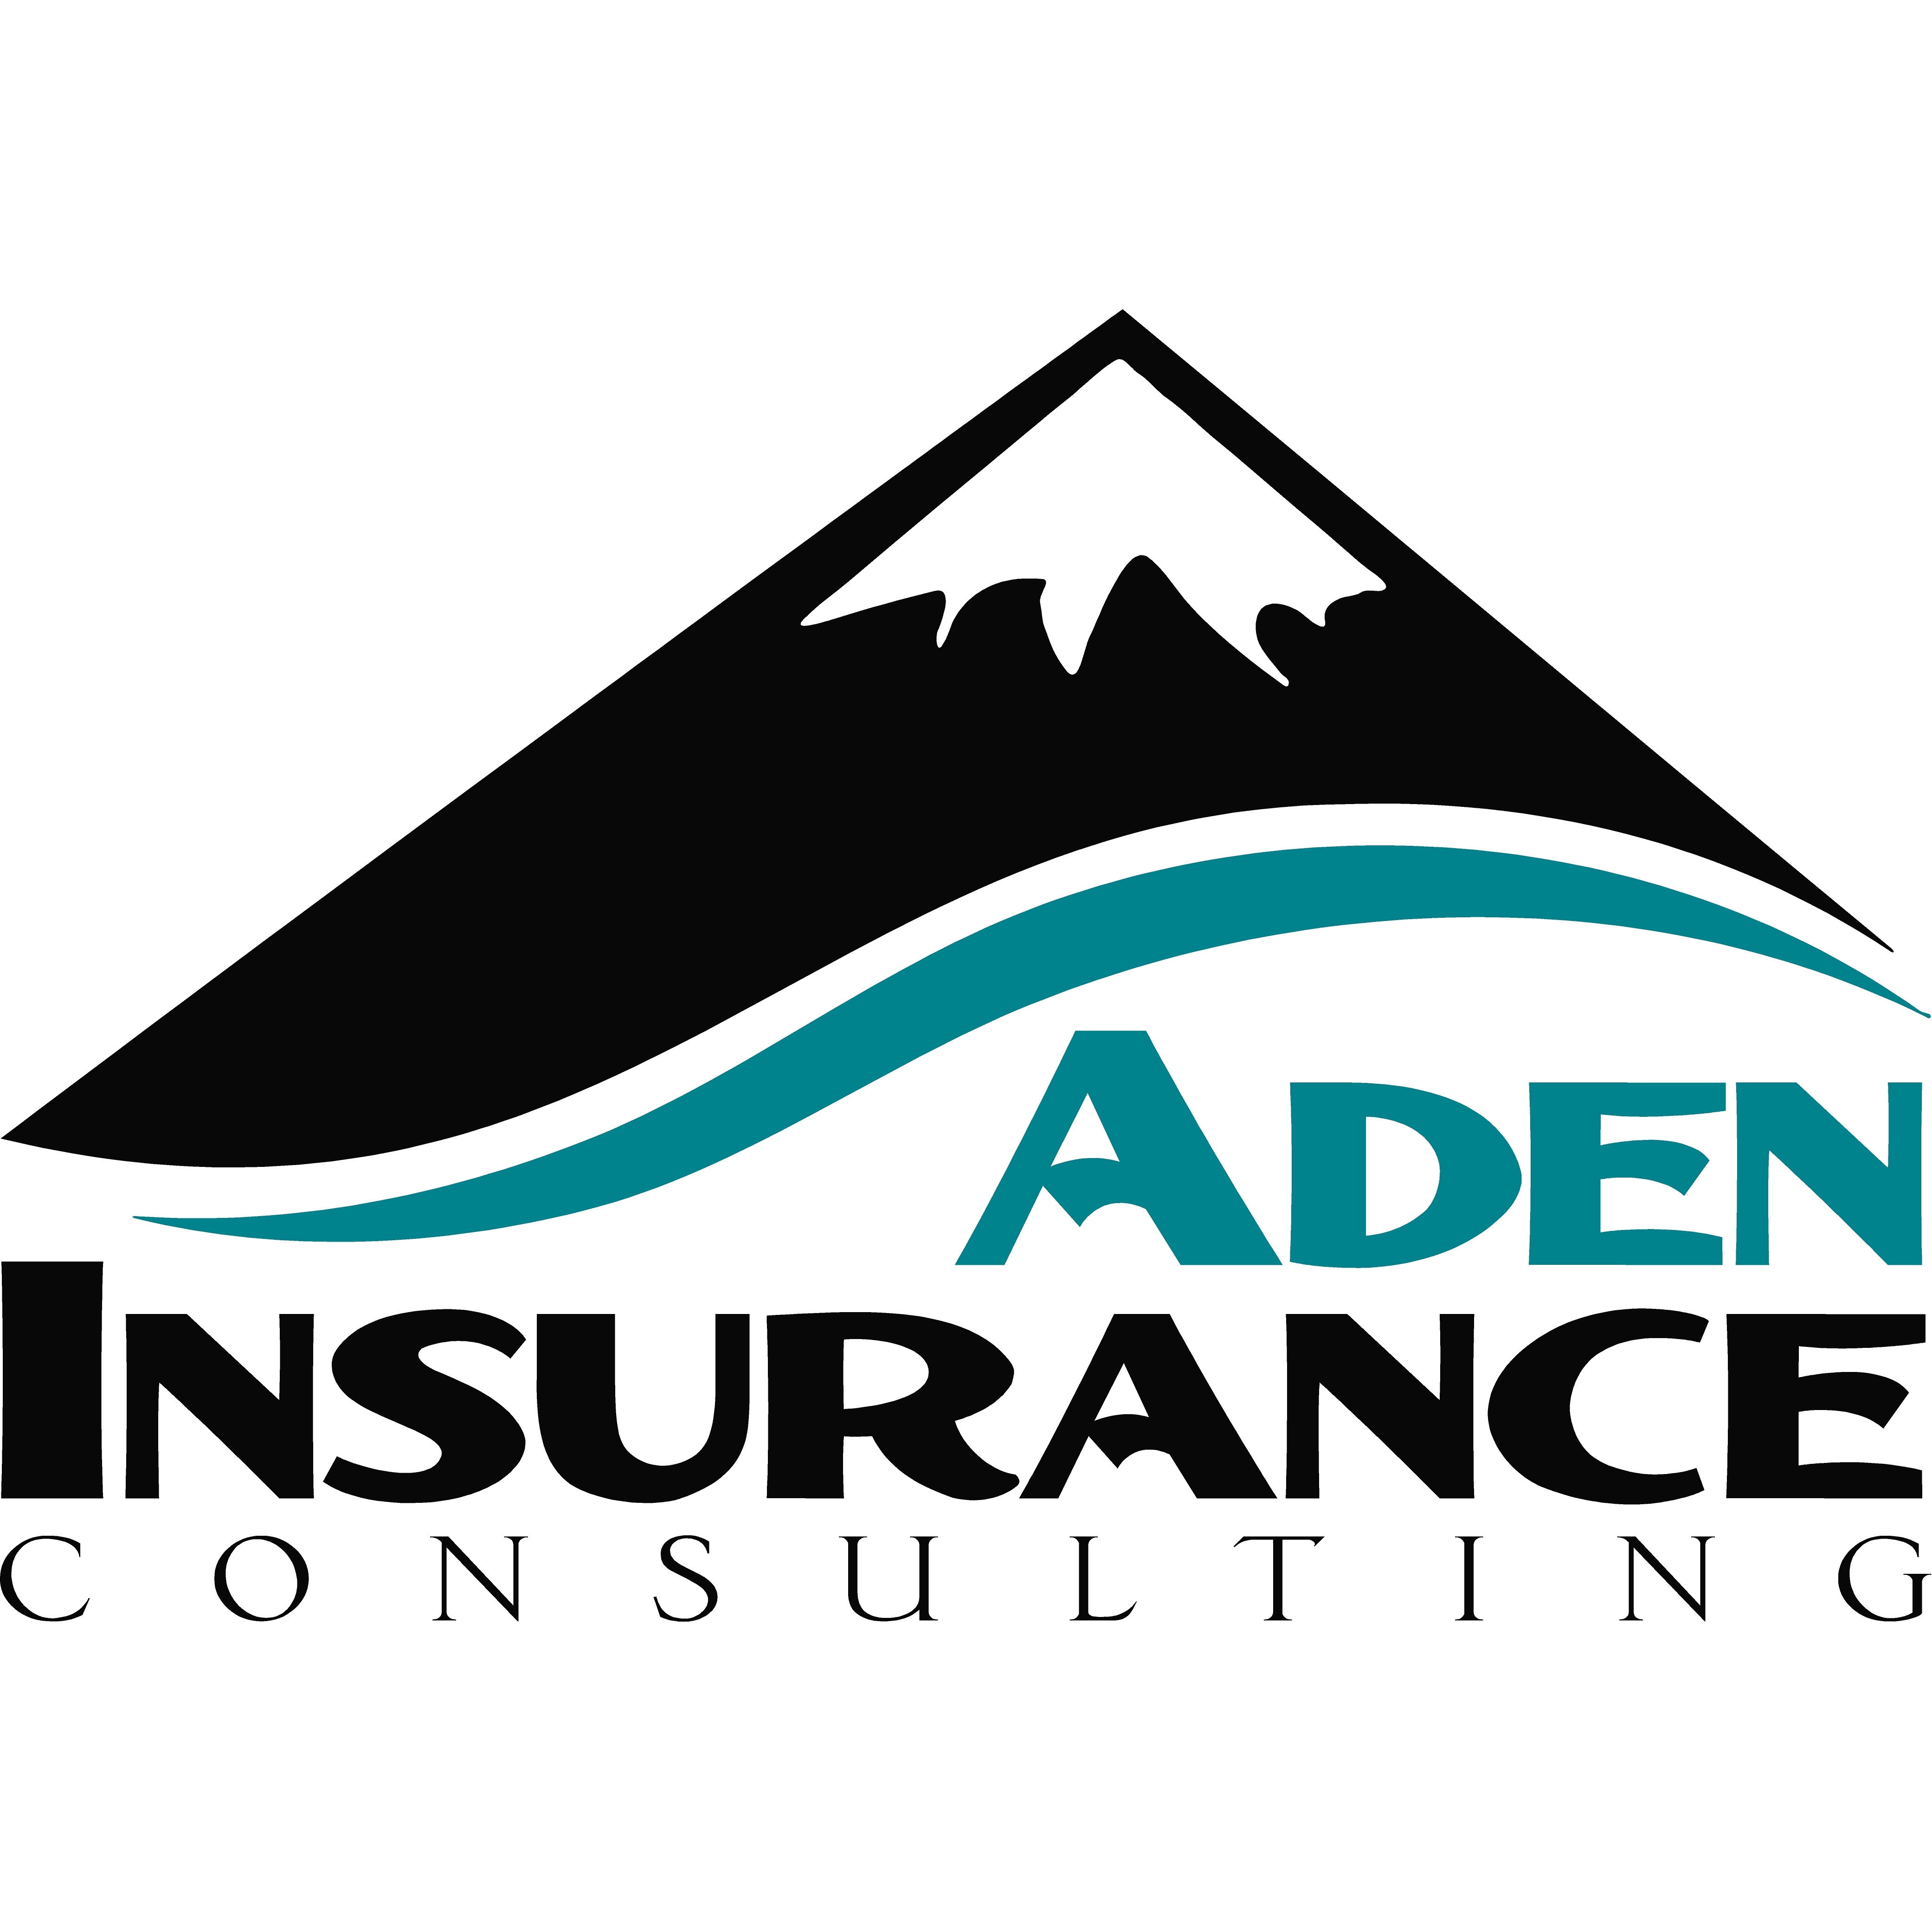 Aden Insurance Consulting